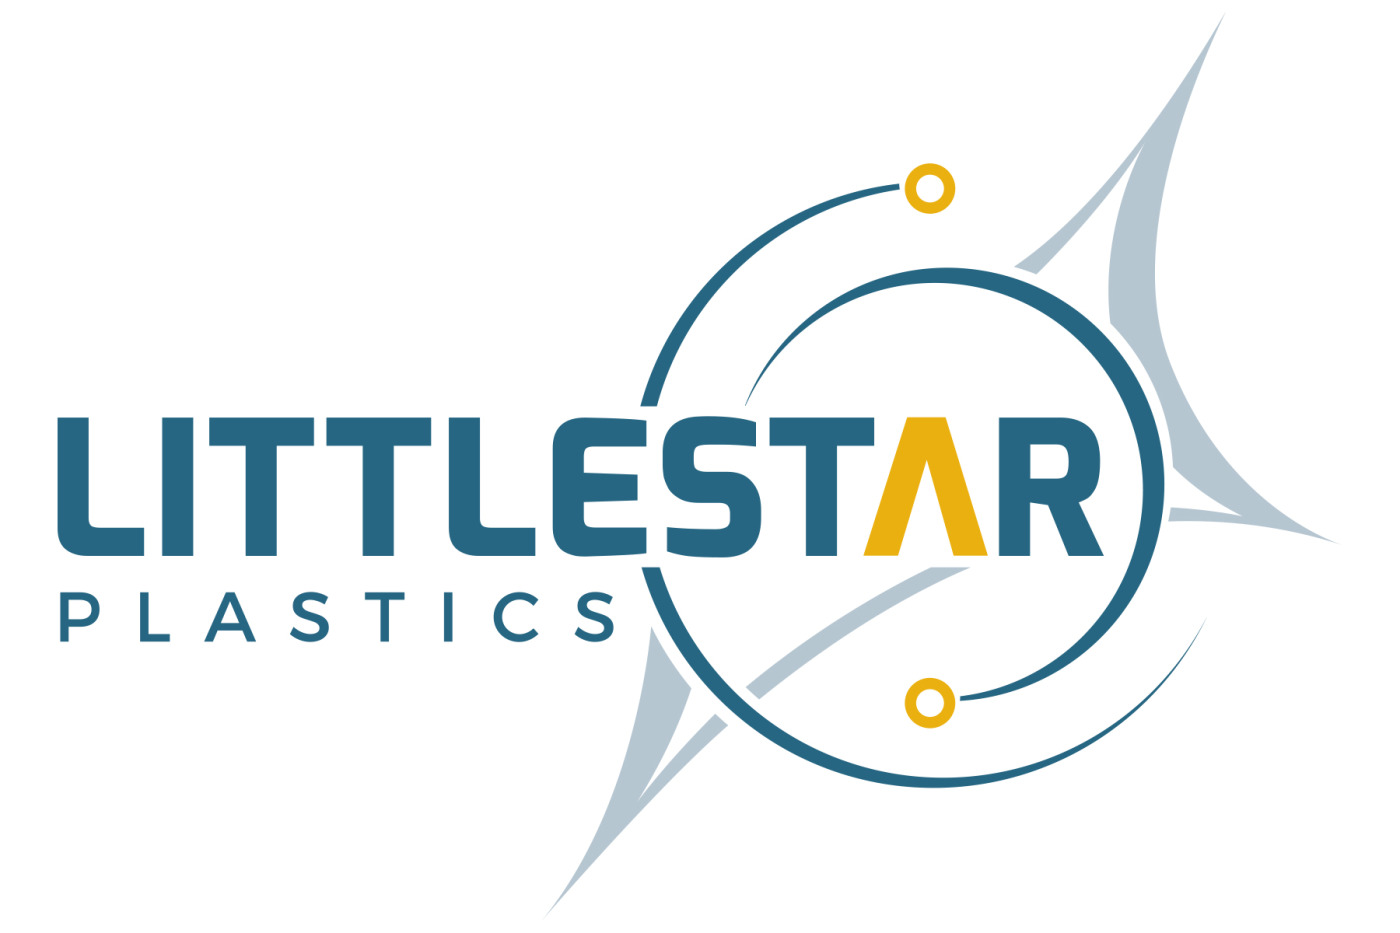 Investments Place Littlestar Plastics at Top of Industry for Molding Capabilities